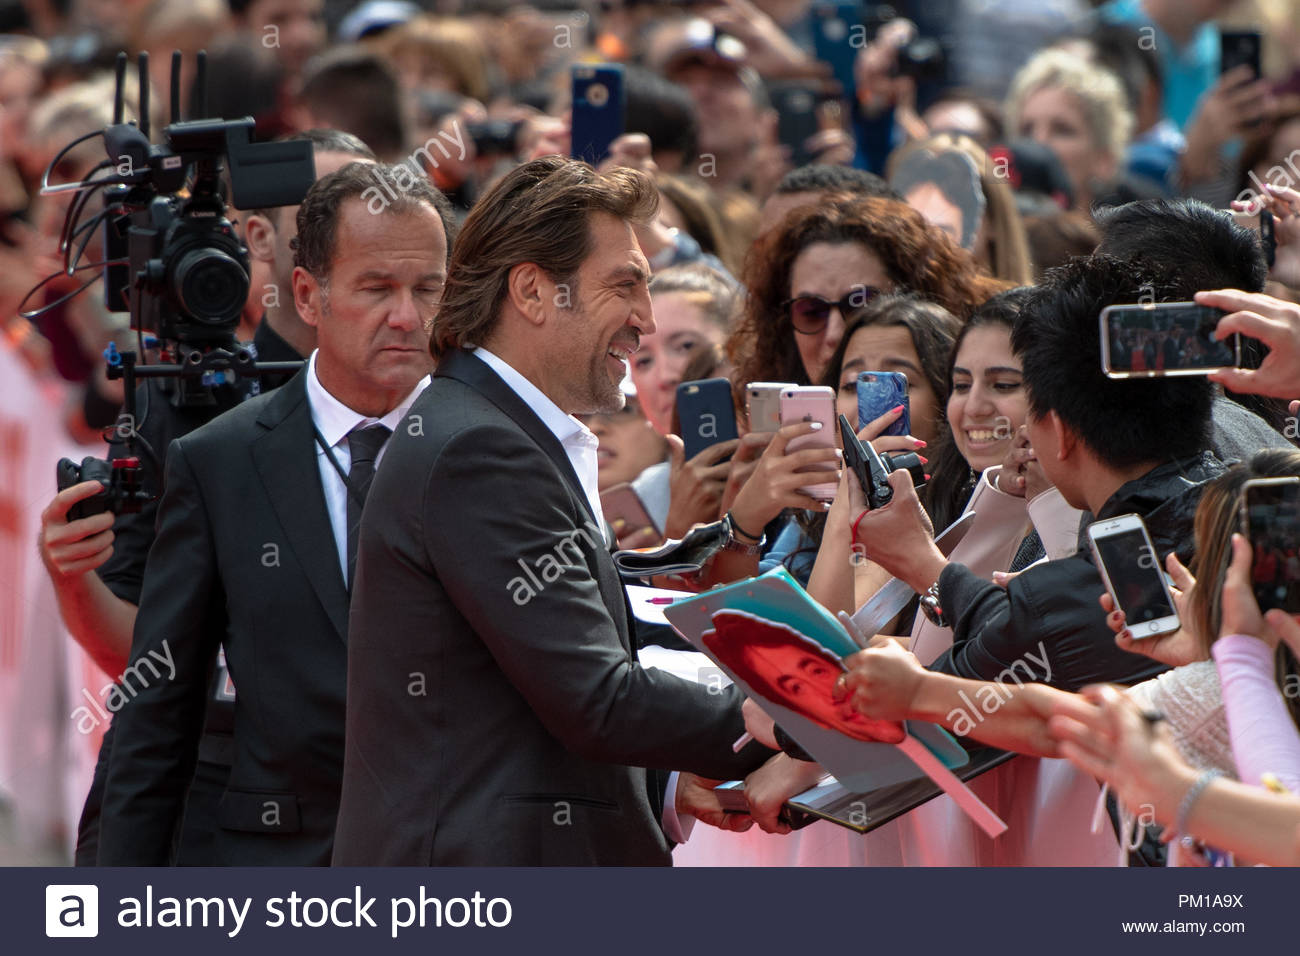 Javier Bardem, actor. TIFF 2018: Toronto International Film Festival is one of the most important events of the film industry in the world Stock Photo